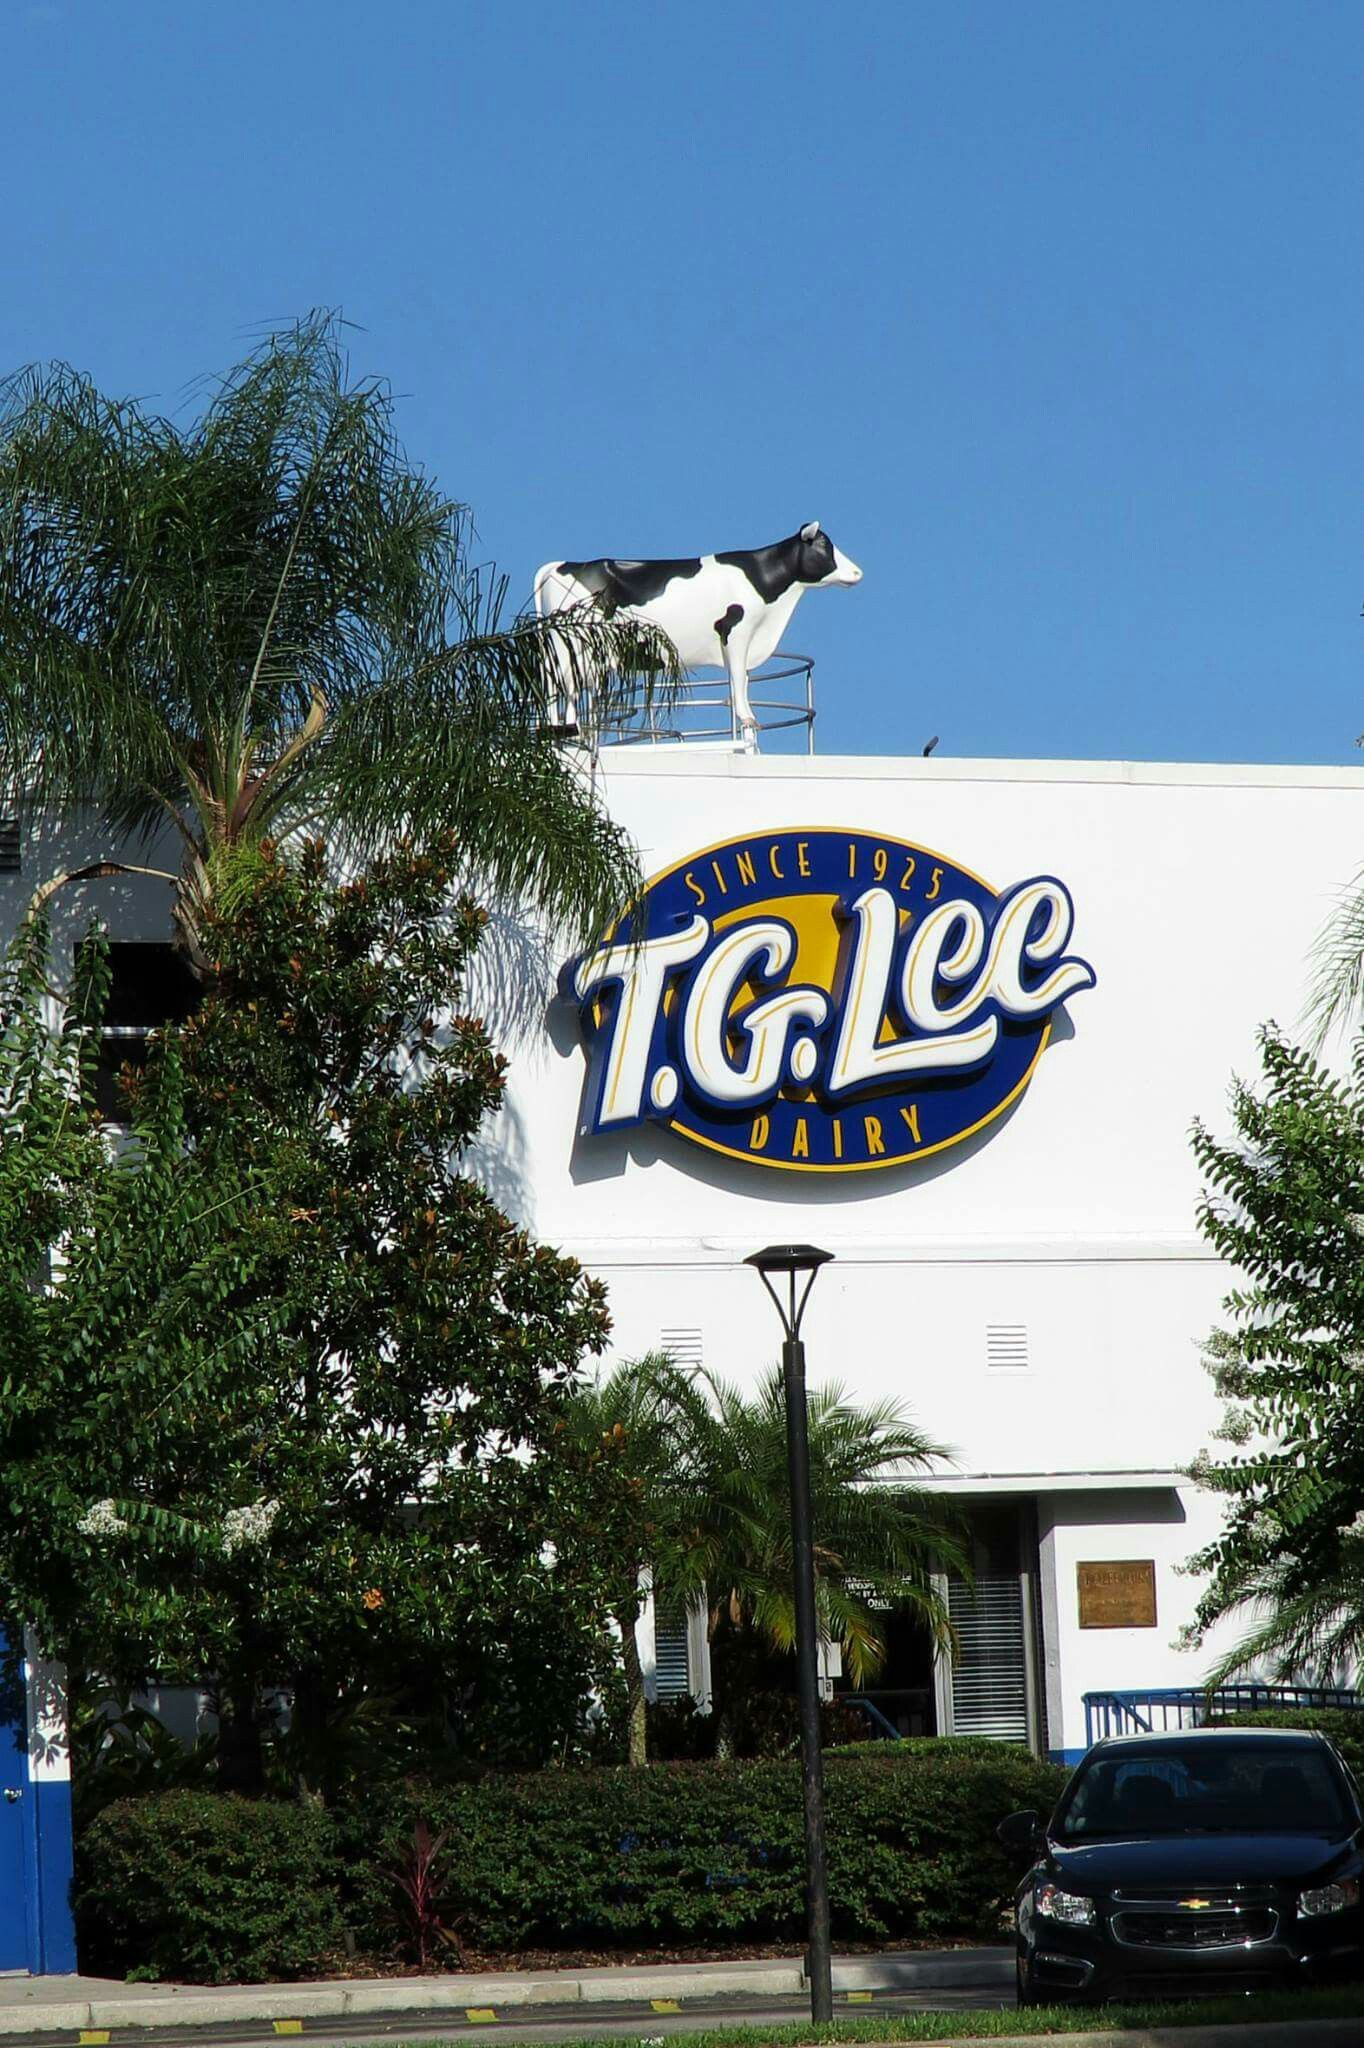 Tg Lee Dairy In East Orlando Colonial Mall Area Old Florida Vintage Florida Florida Travel